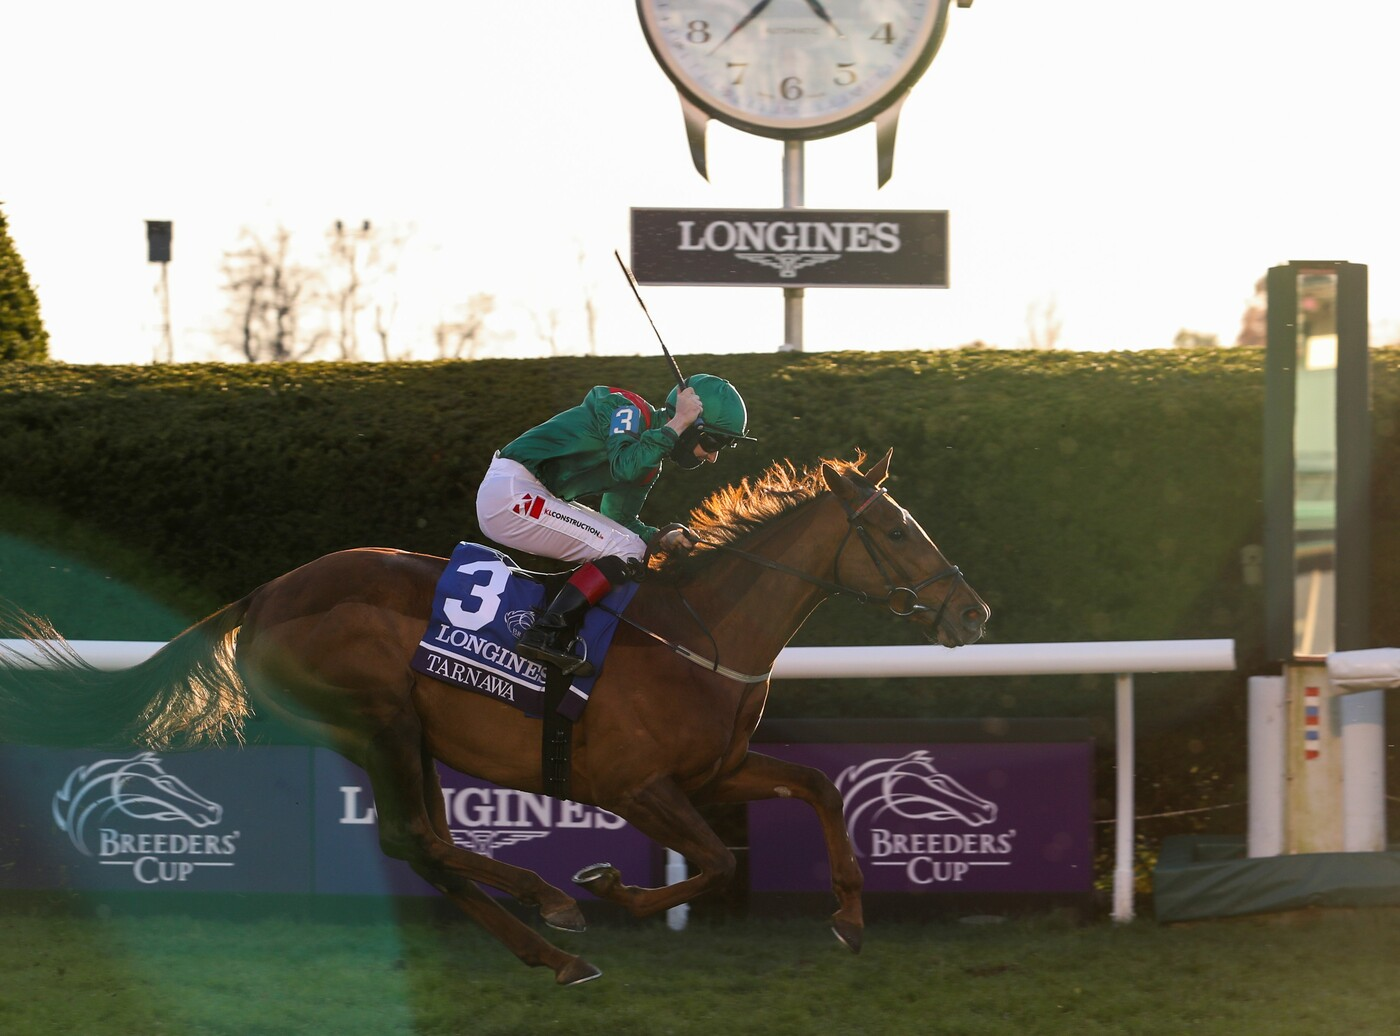 Longines Flat Racing Event: Authentic raced into victory at the 2020 Longines Breeders Cup Classic 6